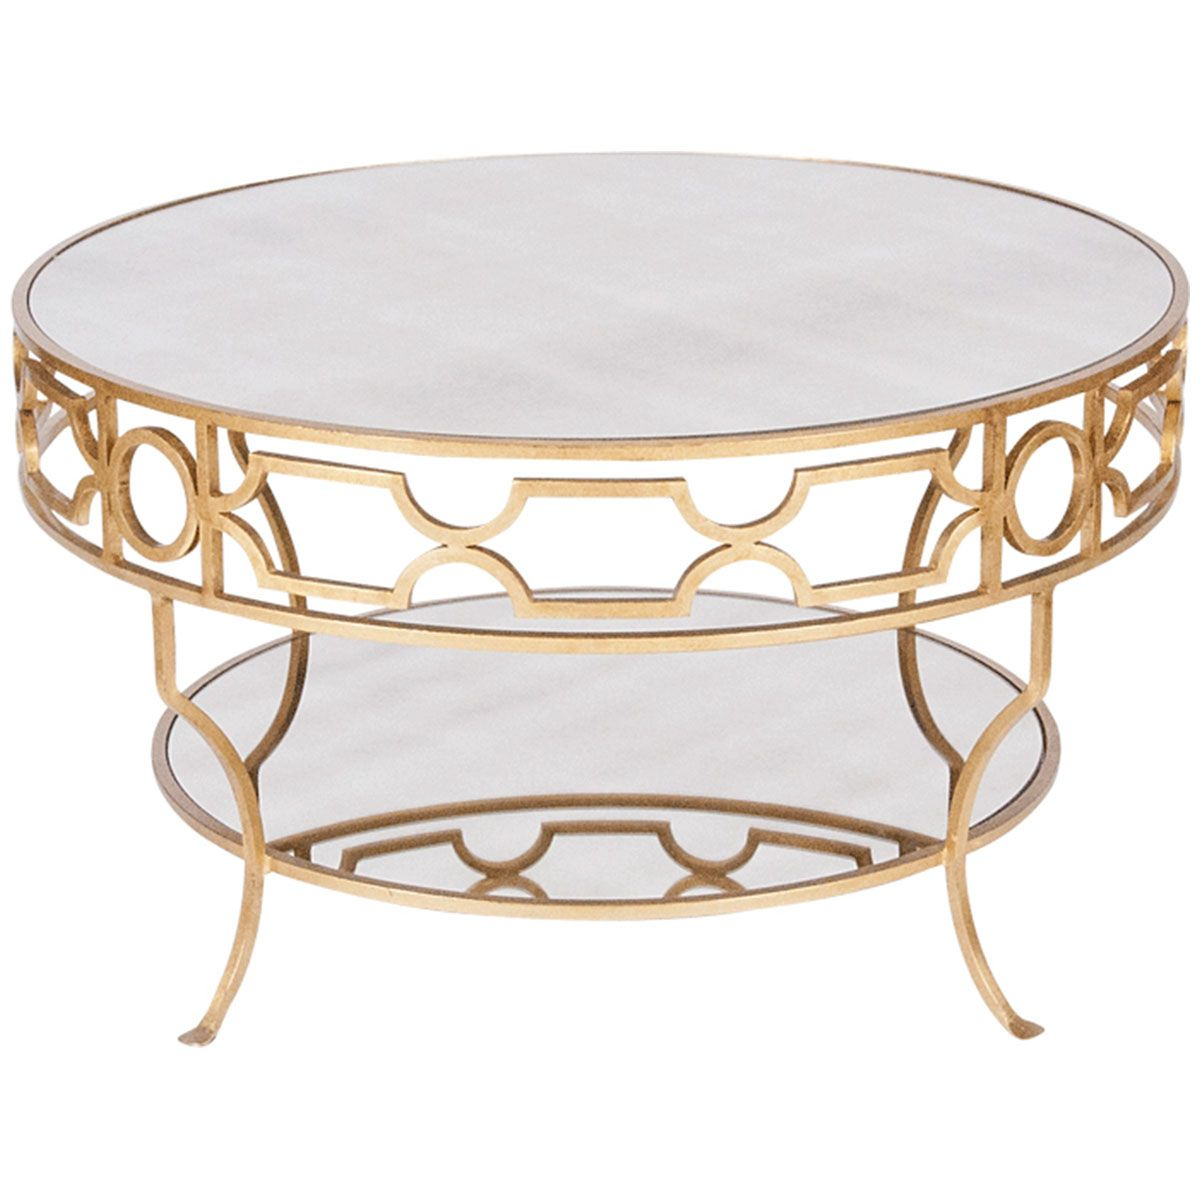 Worlds Away Two Tier Round Gold Leaf Coffee Table With Plain